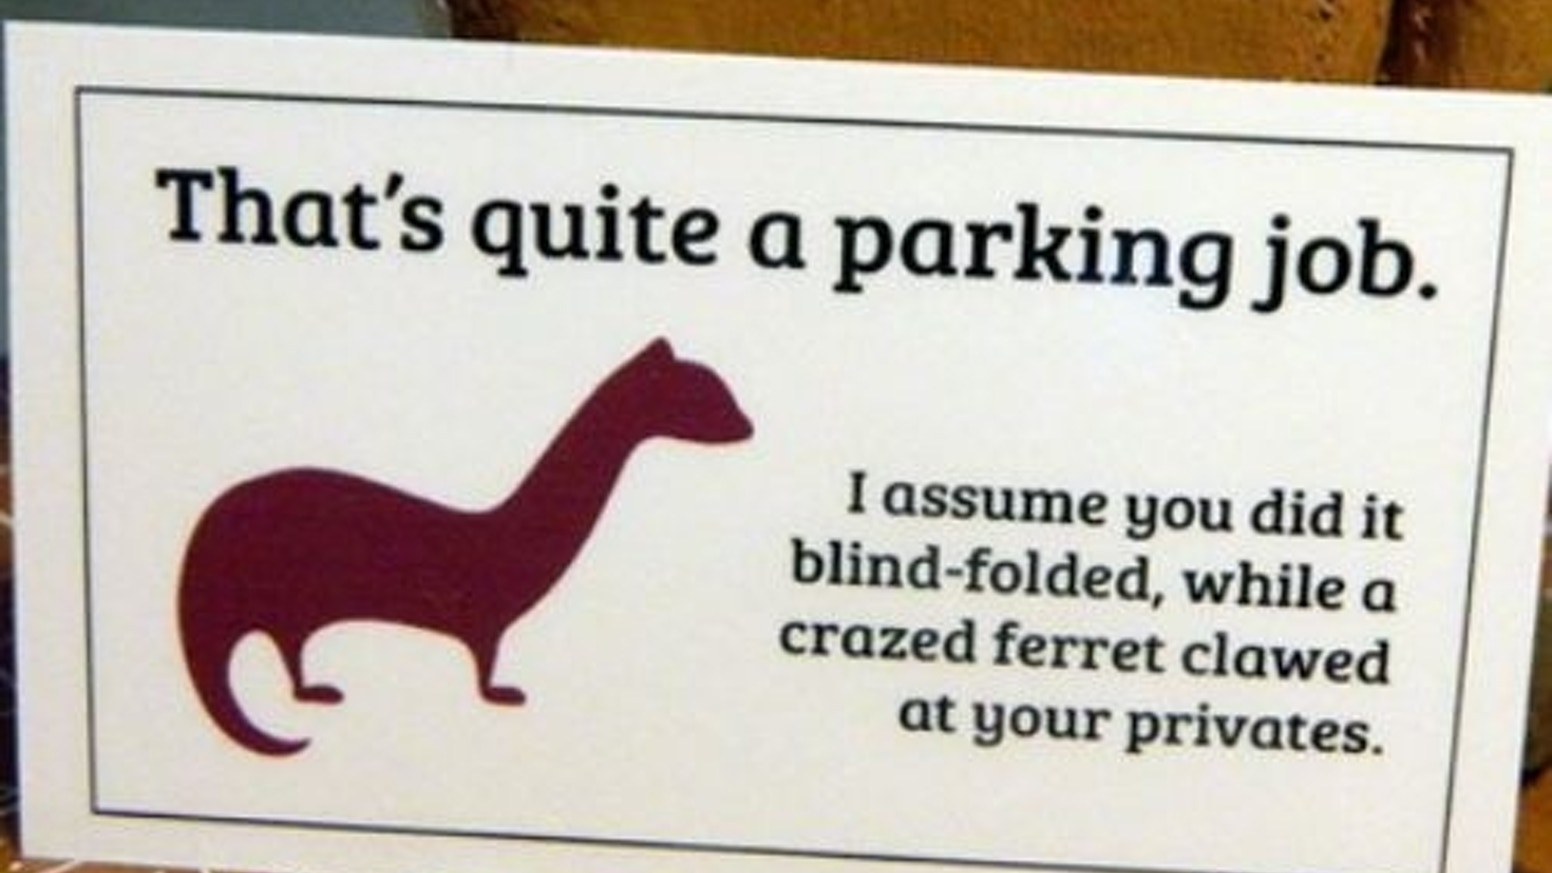 People suck at parking. You should let them know. Here's how.